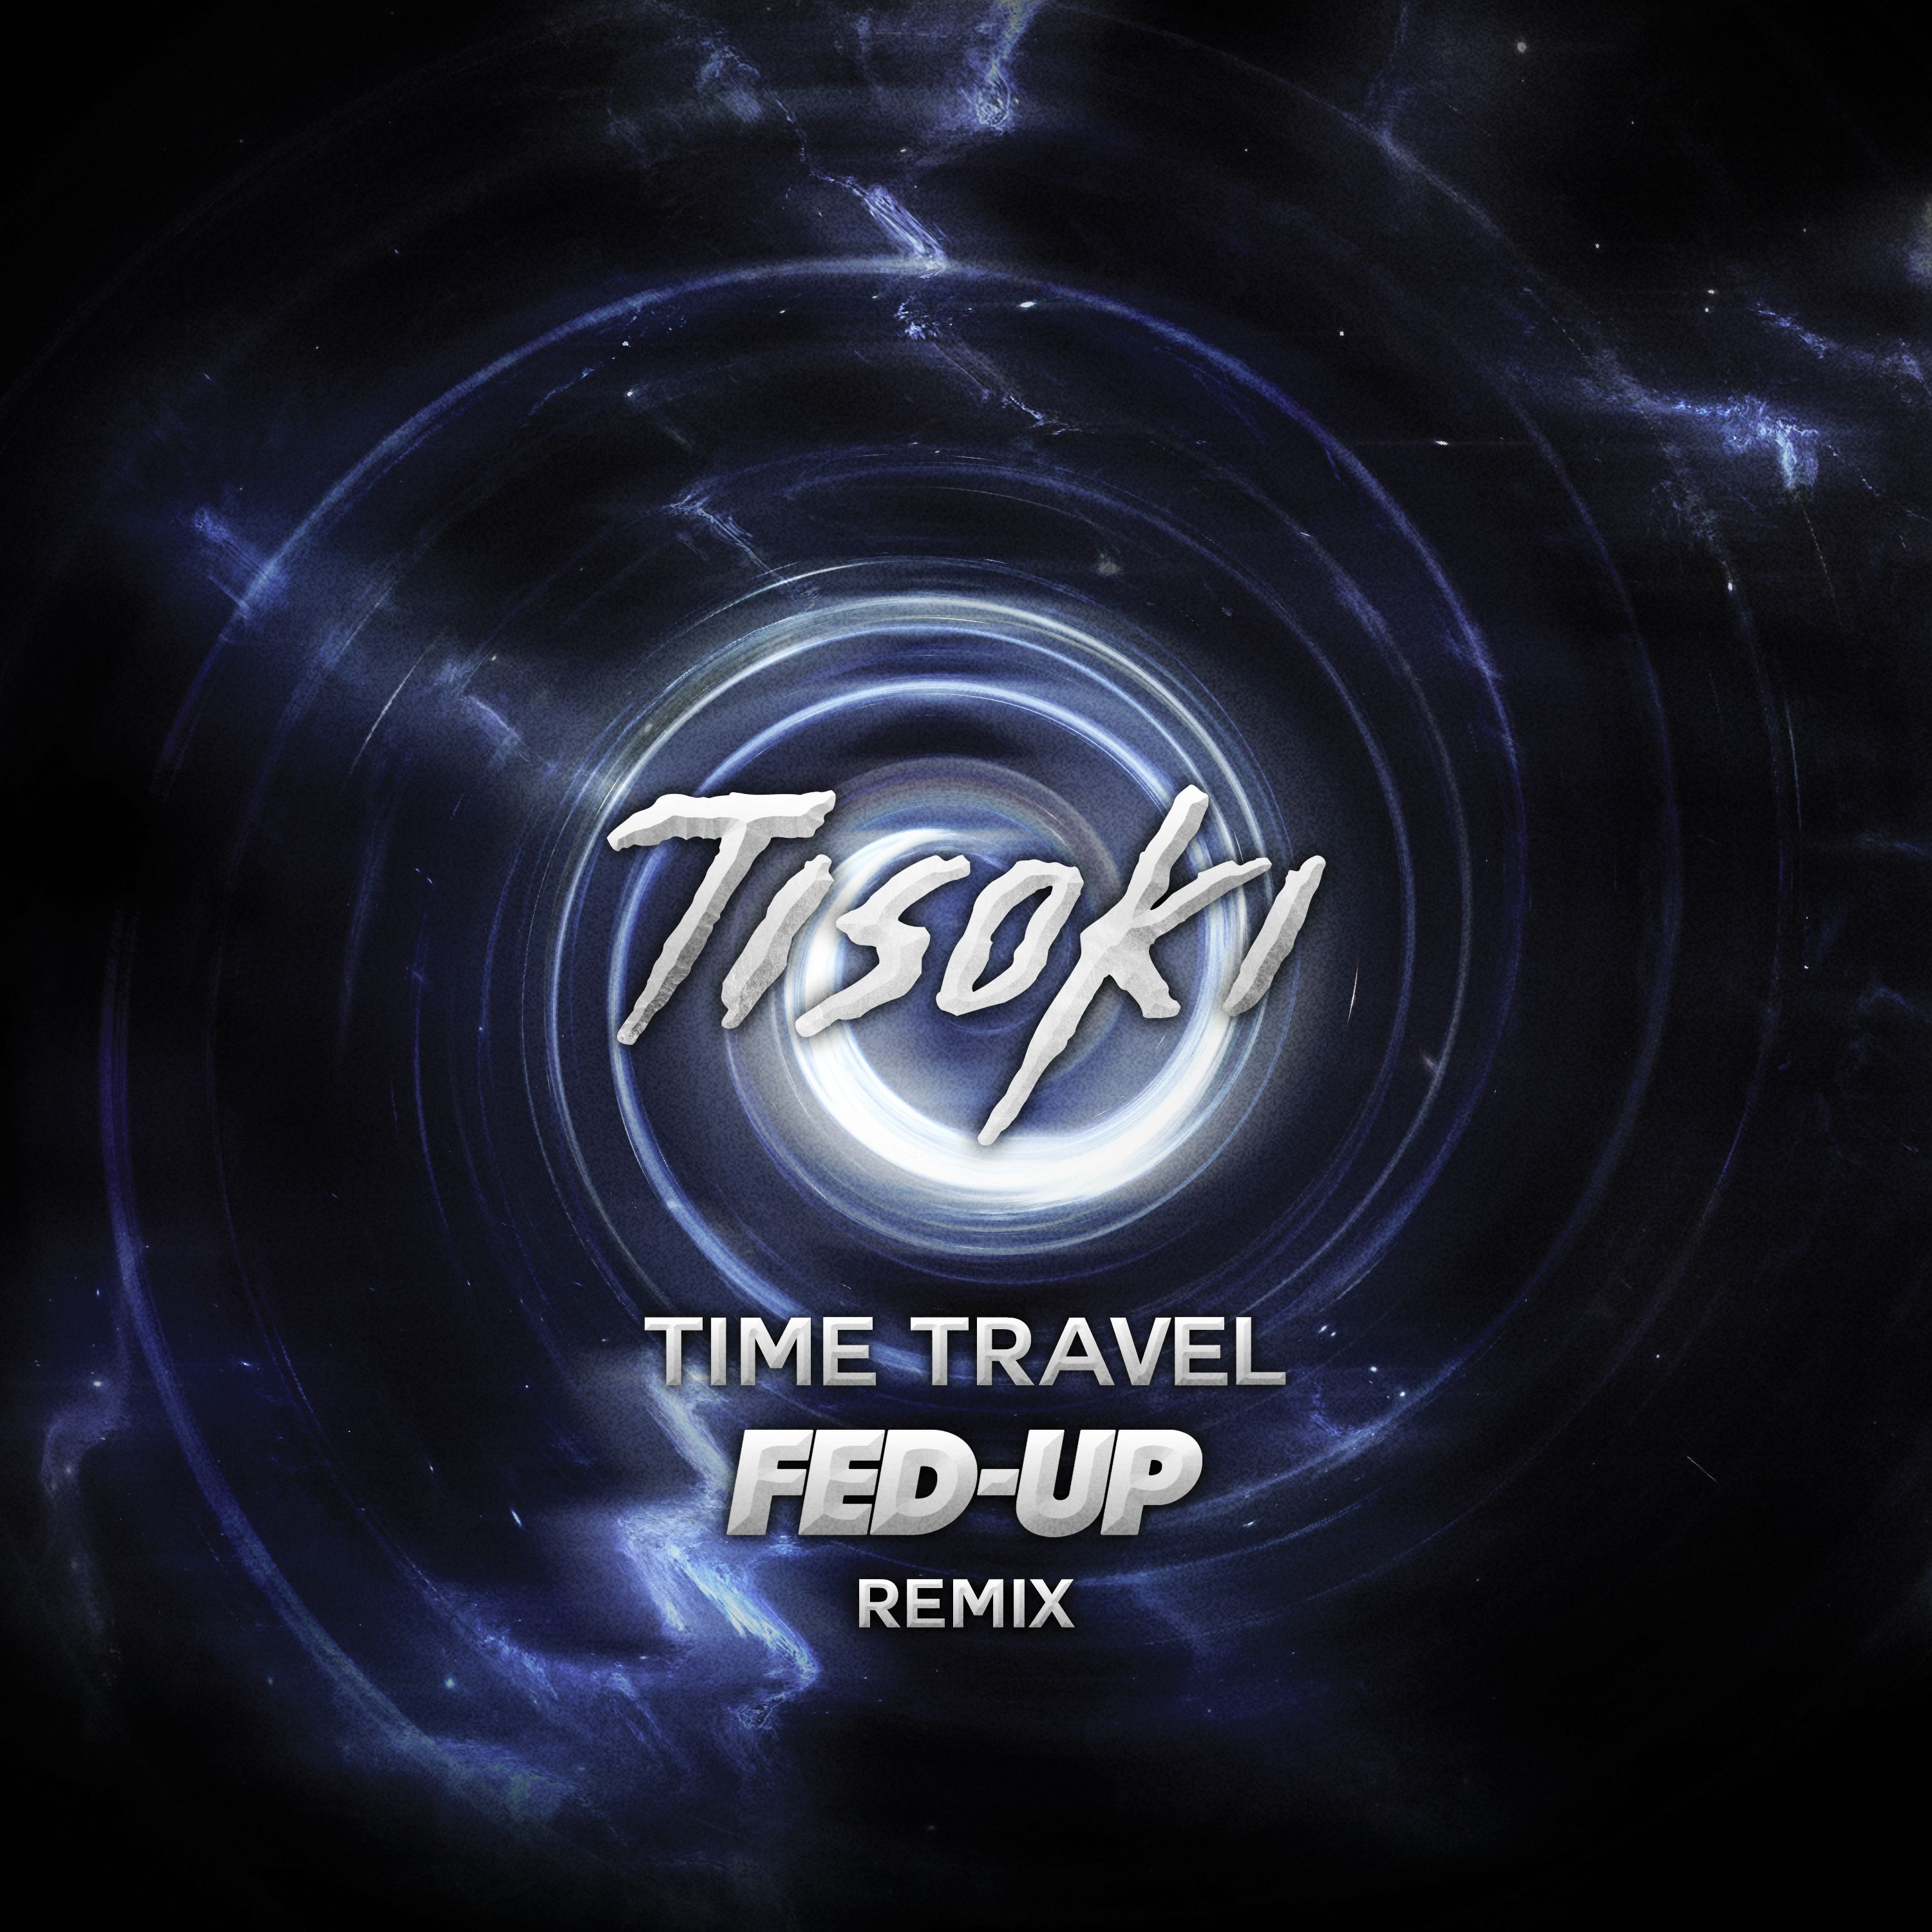 Tisoki Time Travel (incl. Remix) Style Dubstep / Trap